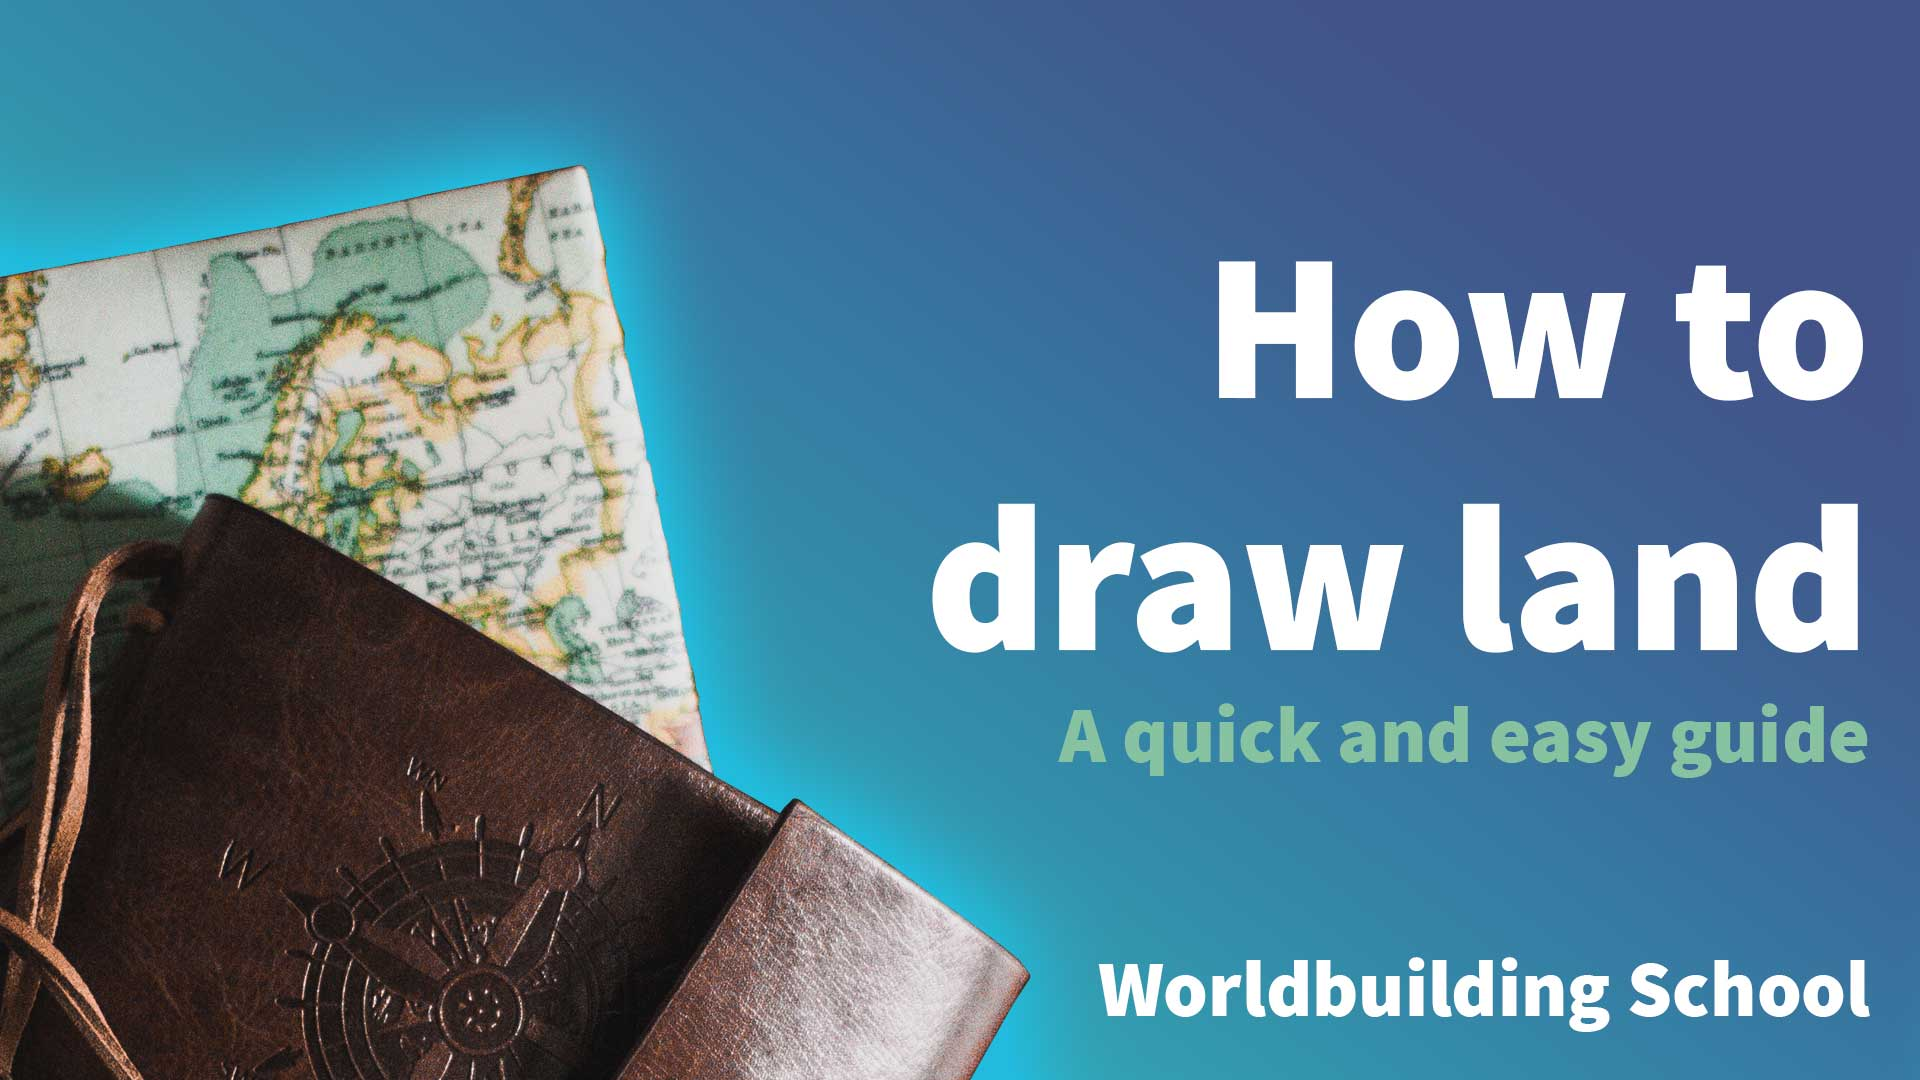 How to draw land